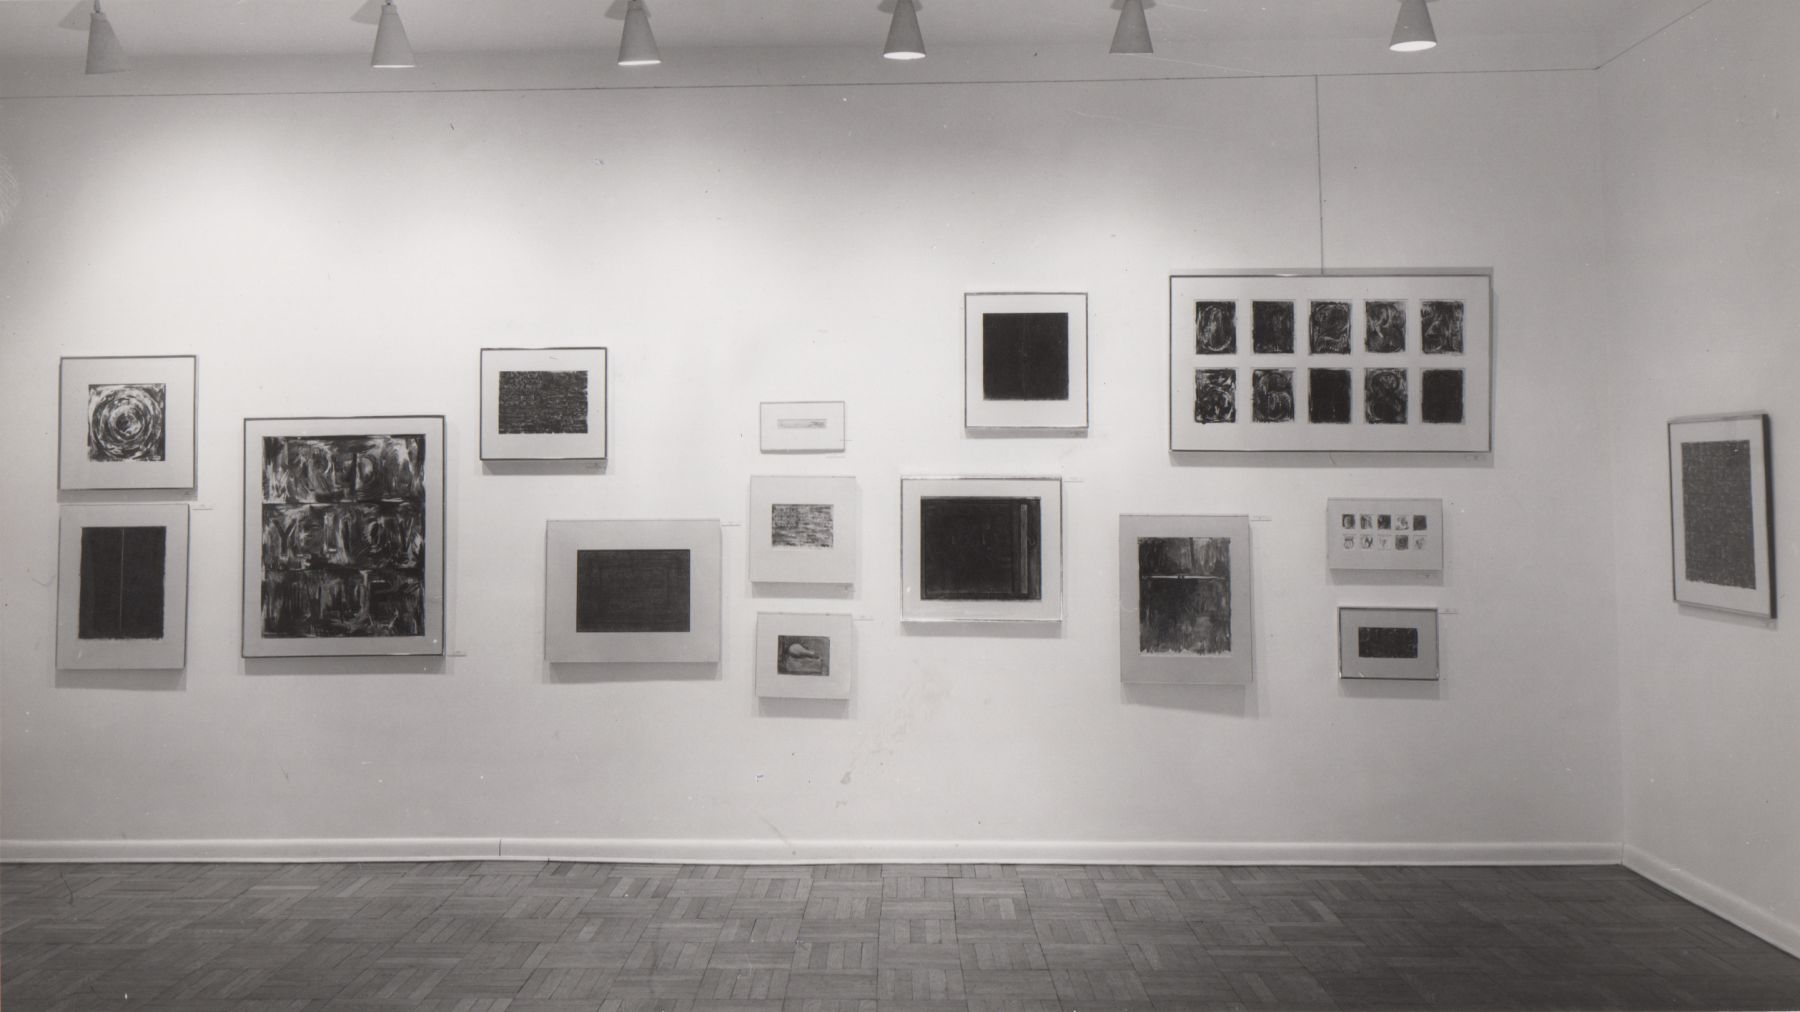 Installation view, Jasper Johns: Drawings and Sculpture, 4 EAST 77.